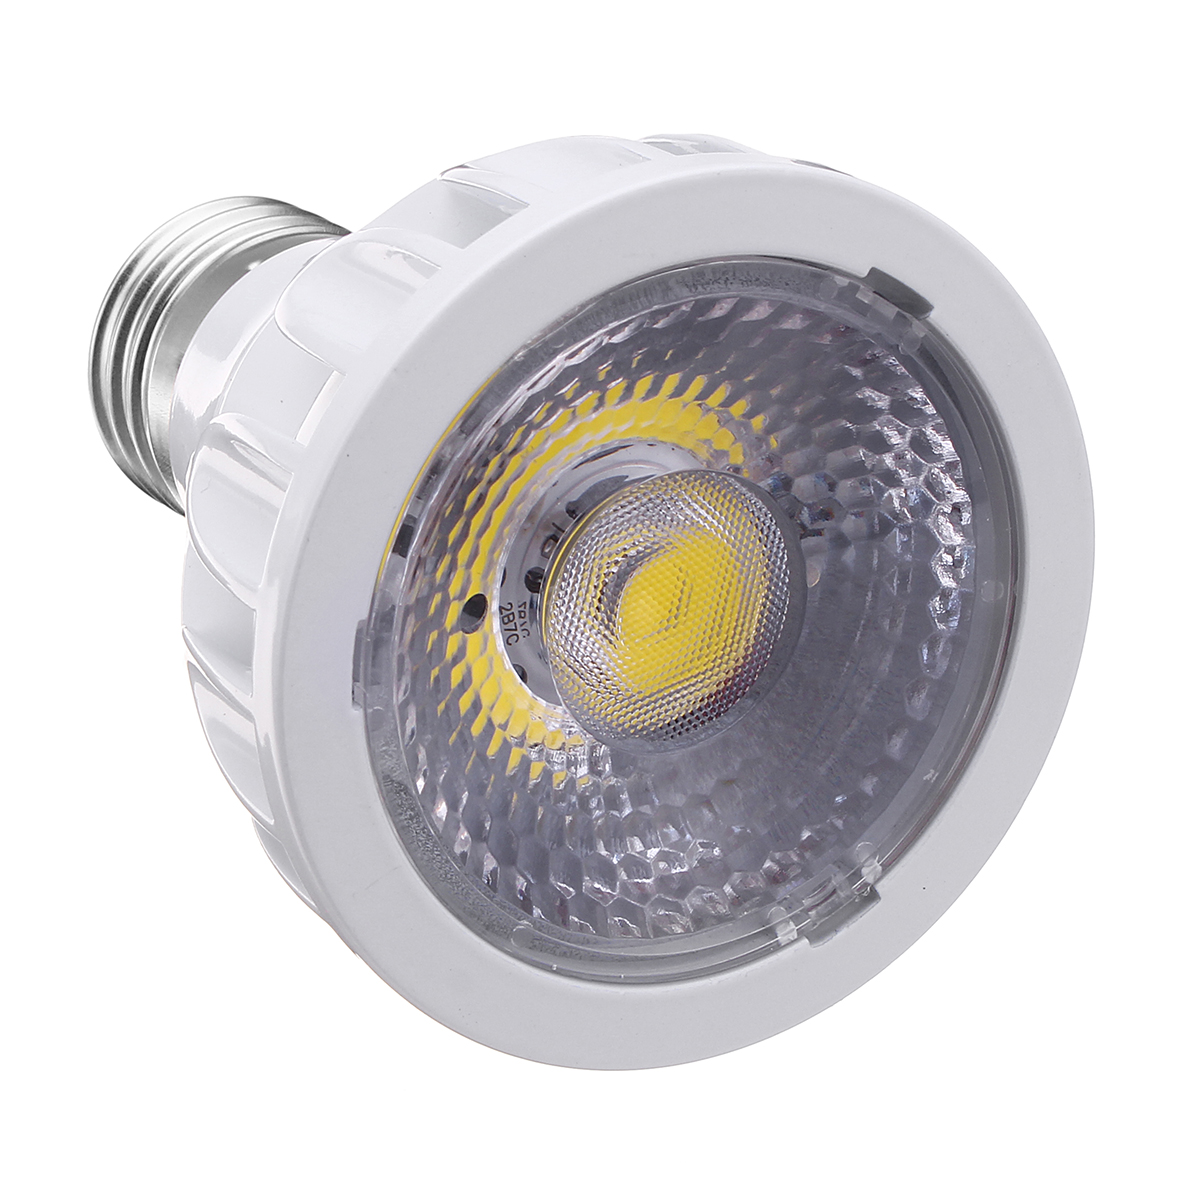 E27 7W Non-Dimmable Super Bright Par 20 LED COB Spot Light Bulb Home Lamp AC85-265V